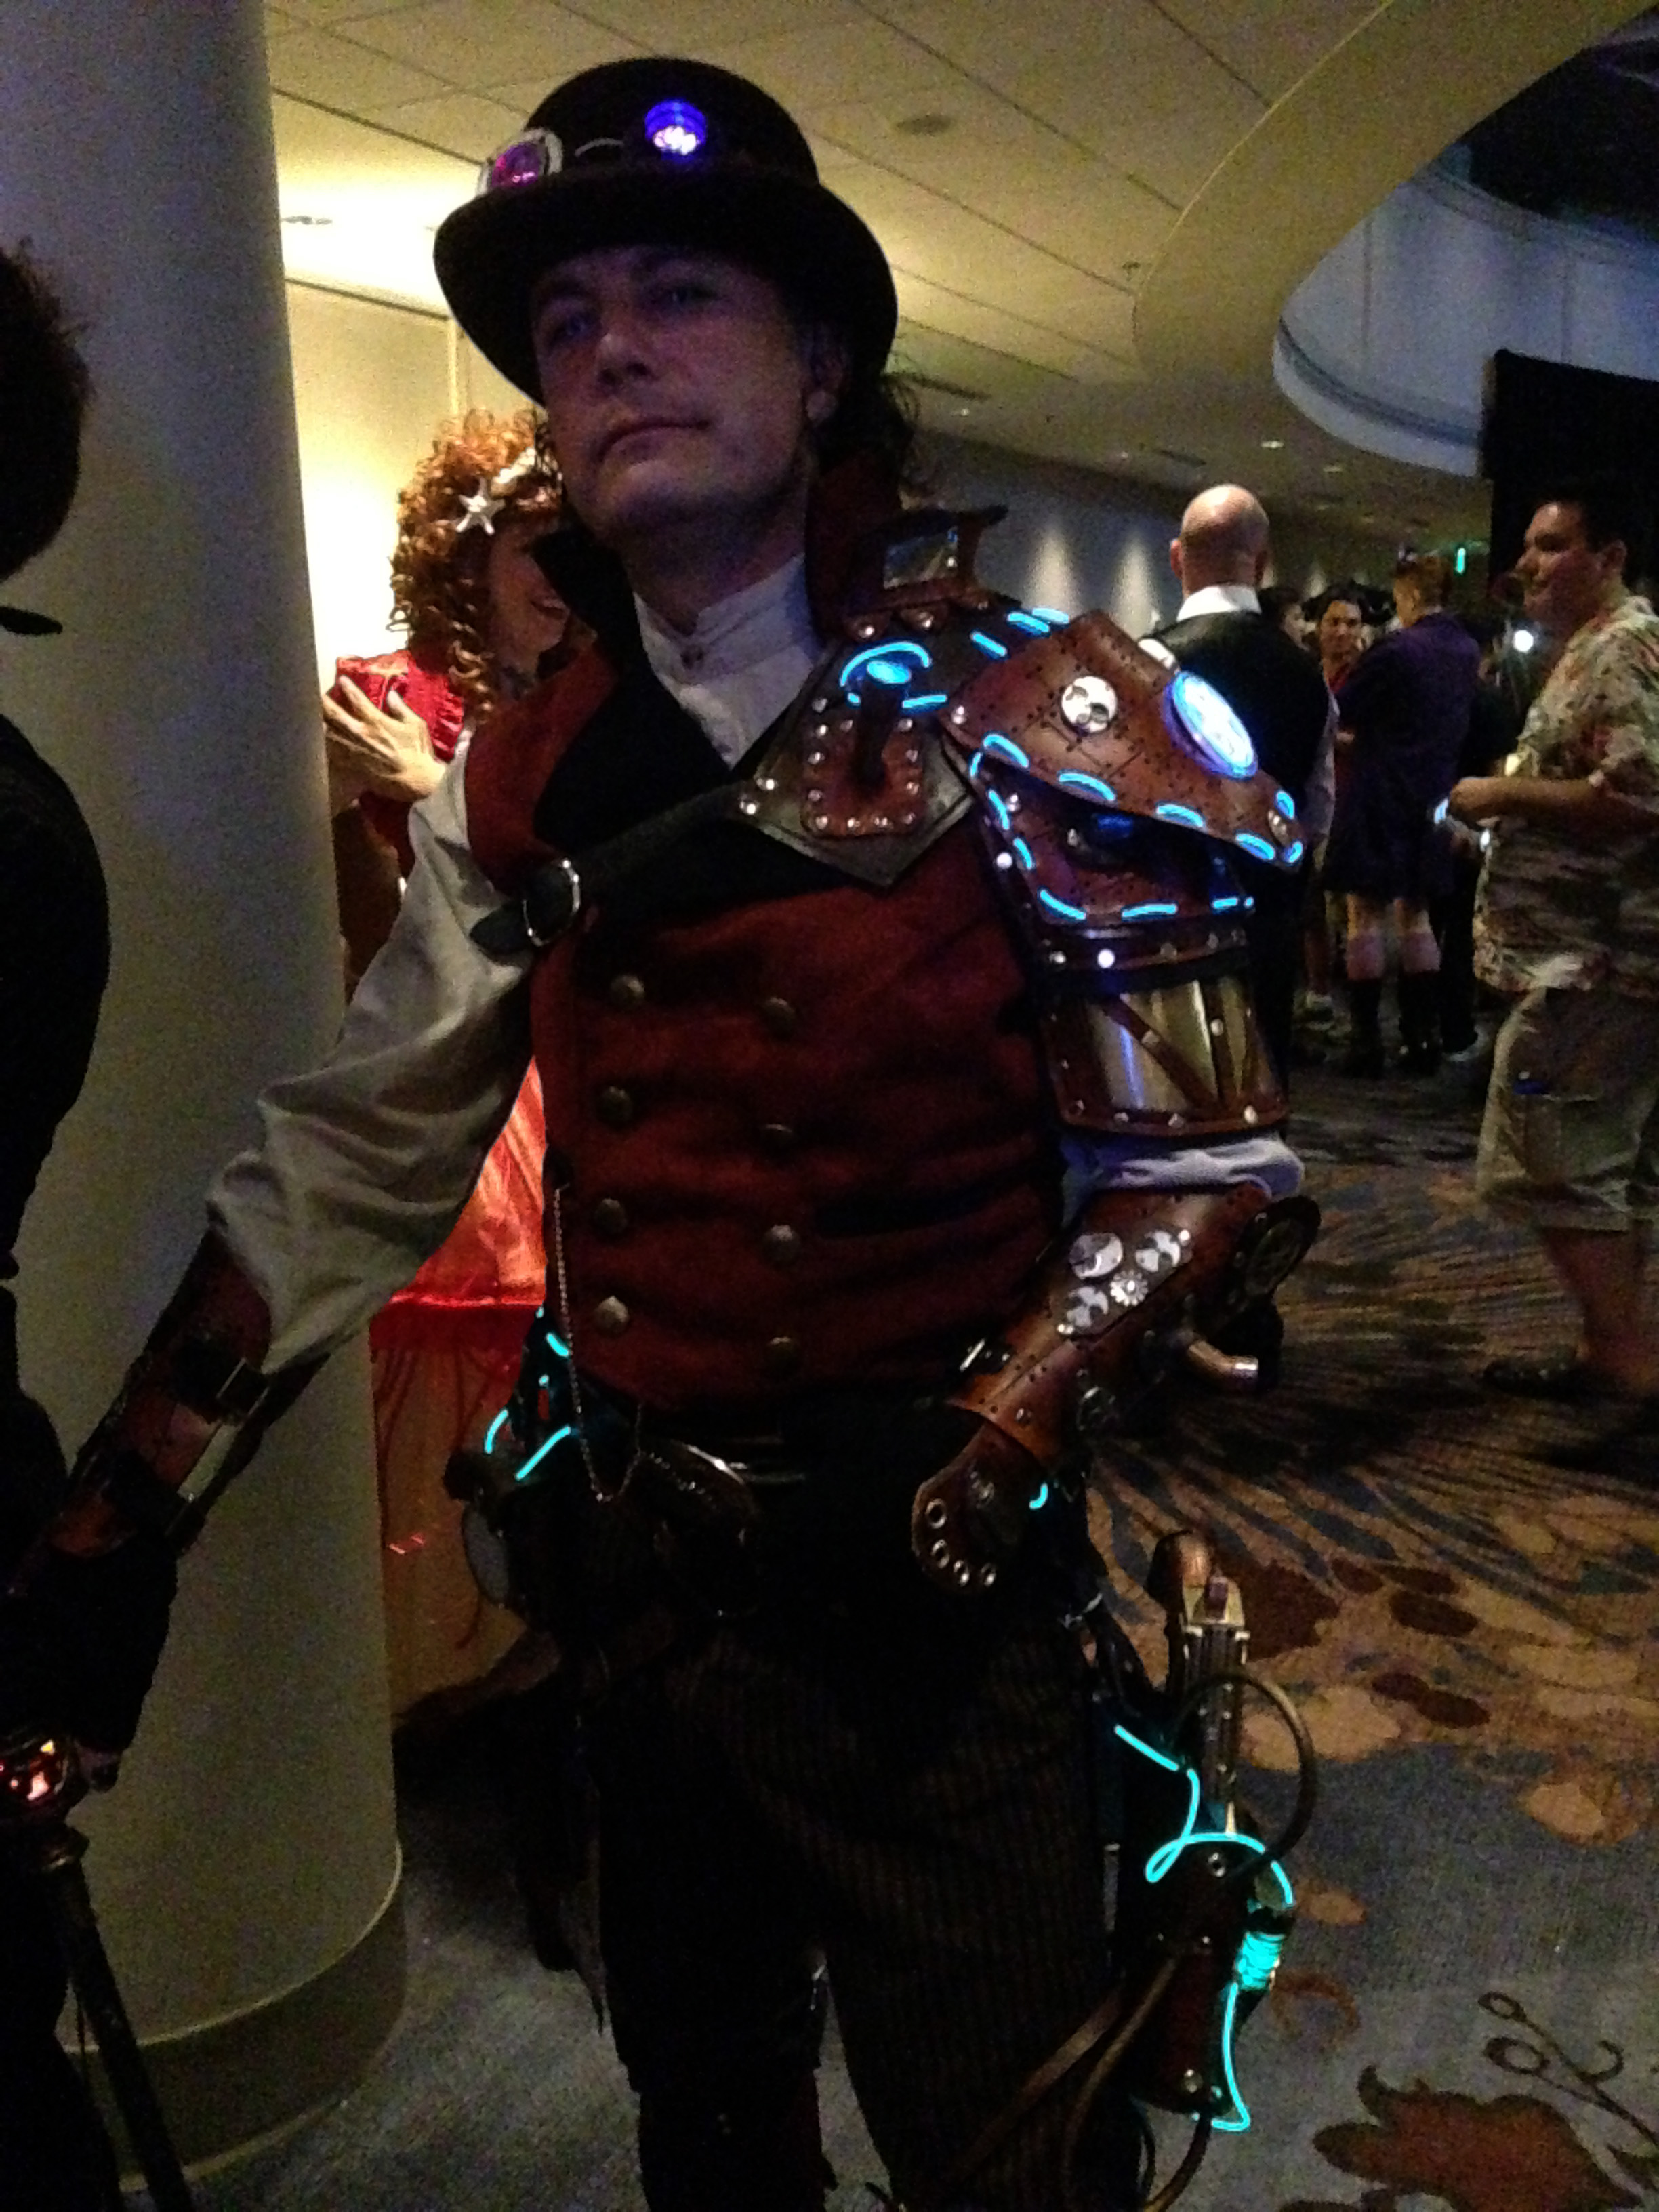 File2014 Dragon Con Cosplay - Ste&unk costumes 9 (15101226646).jpg  sc 1 st  Wikimedia Commons & File:2014 Dragon Con Cosplay - Steampunk costumes 9 (15101226646 ...